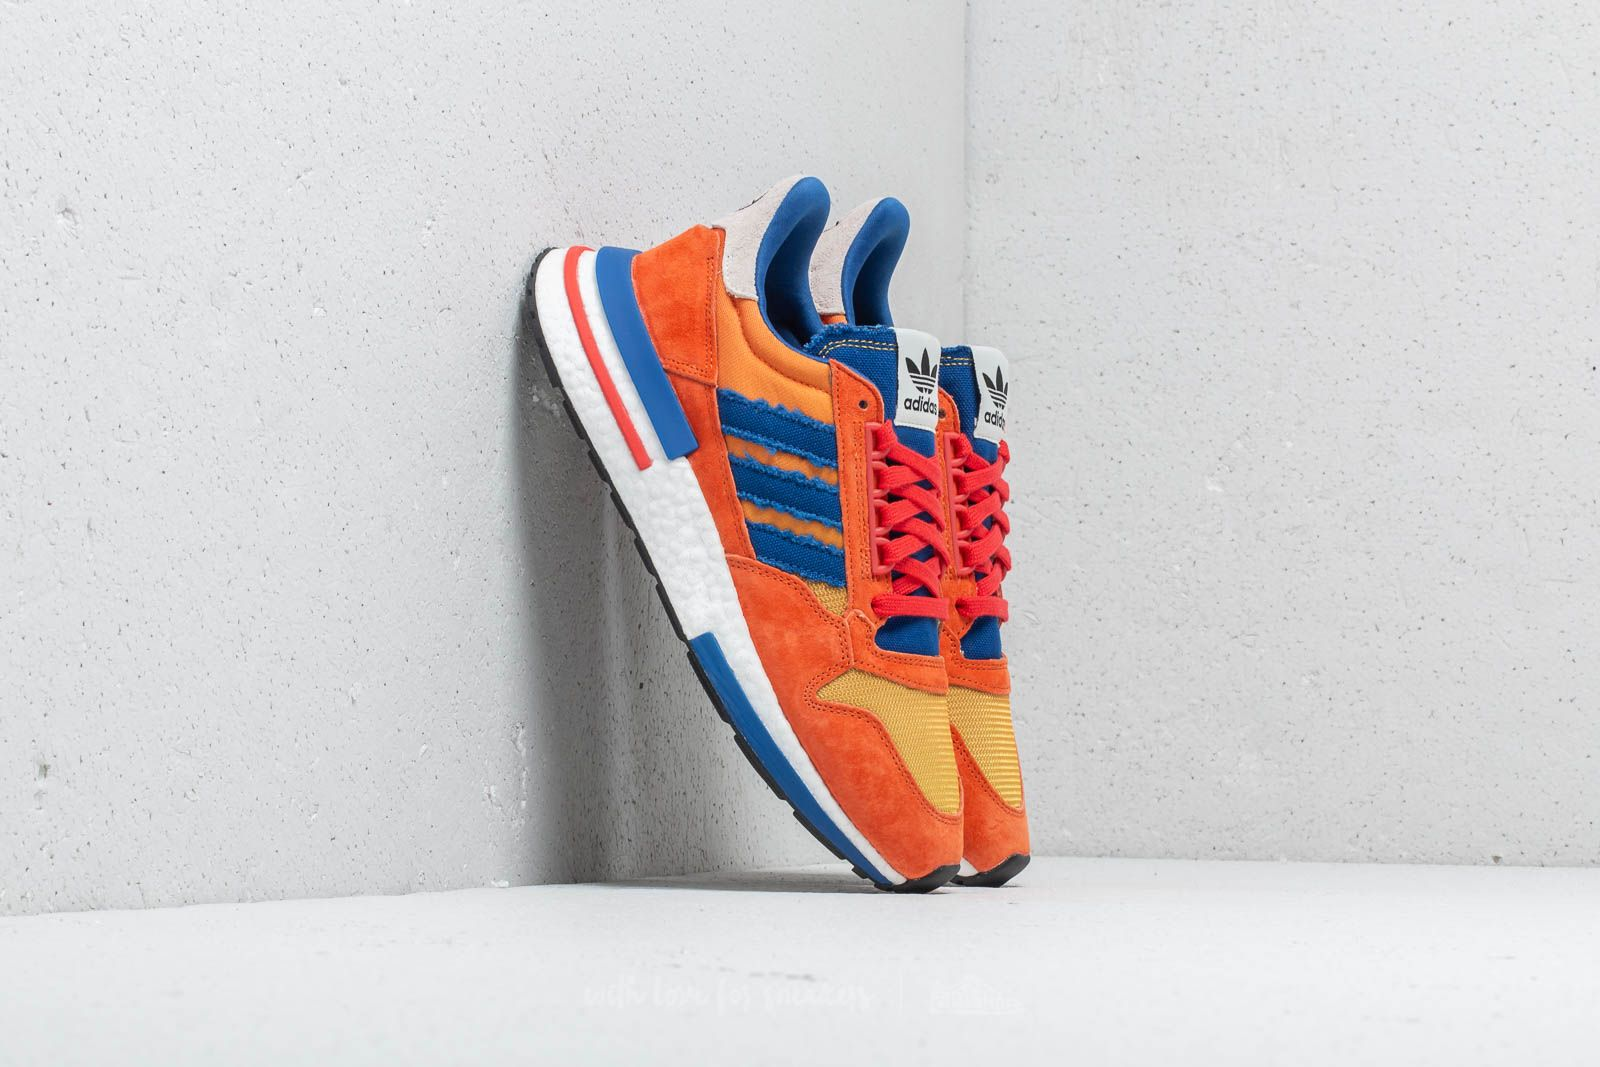 5d561dbeb1aa adidas x Dragon Ball Z ZX 500 Restomod Orange  Blue